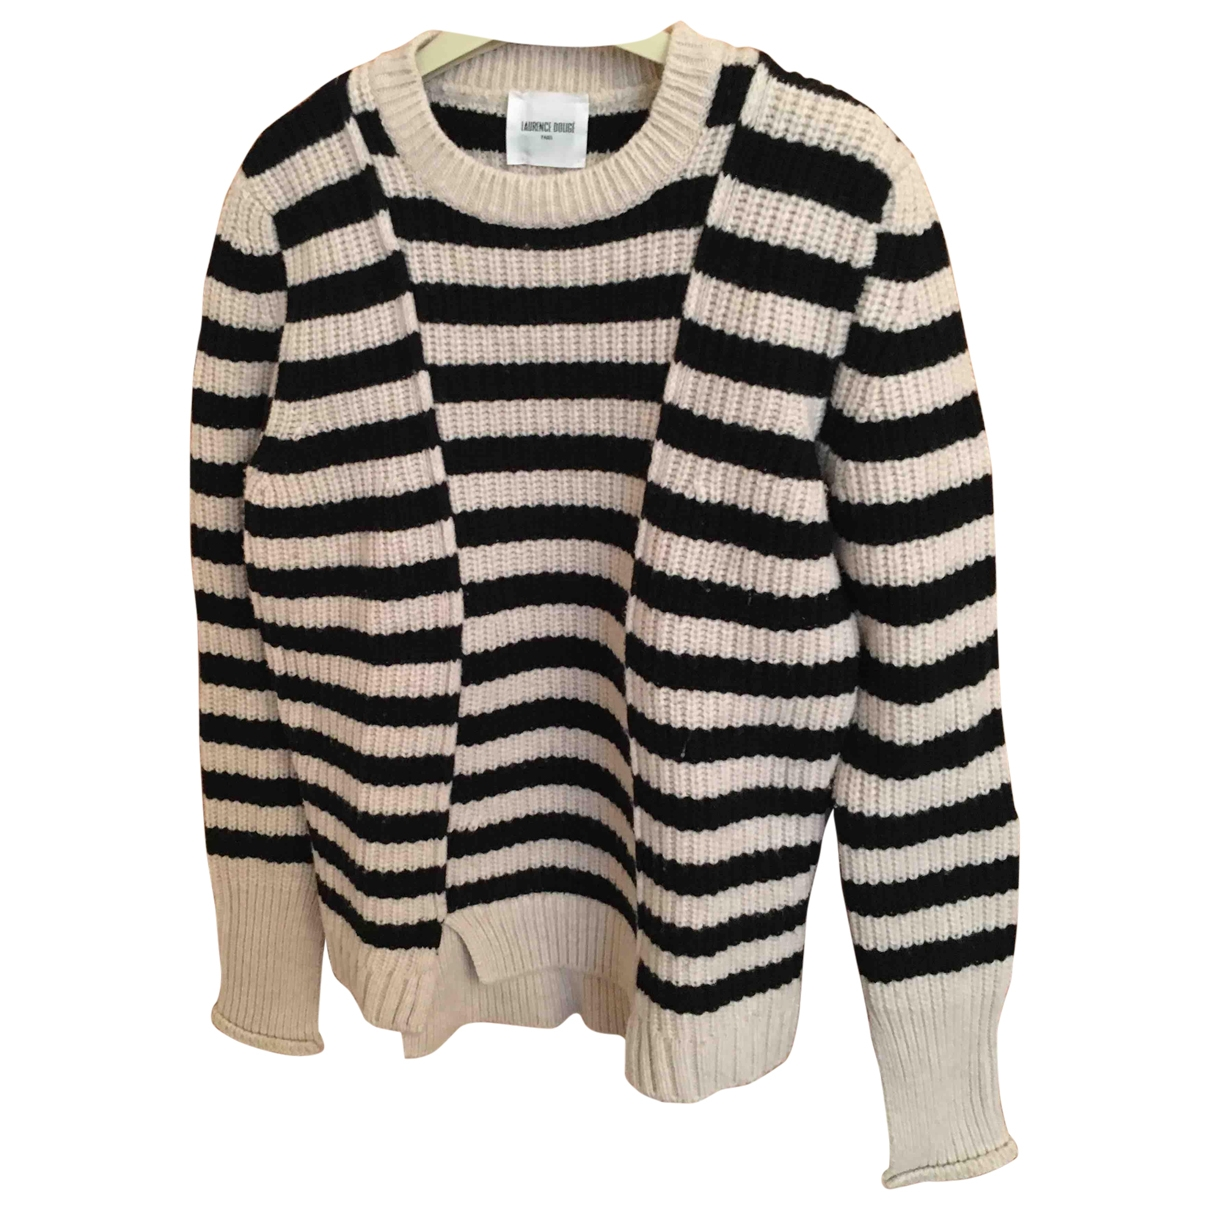 Laurence Dolige \N Pullover in Wolle